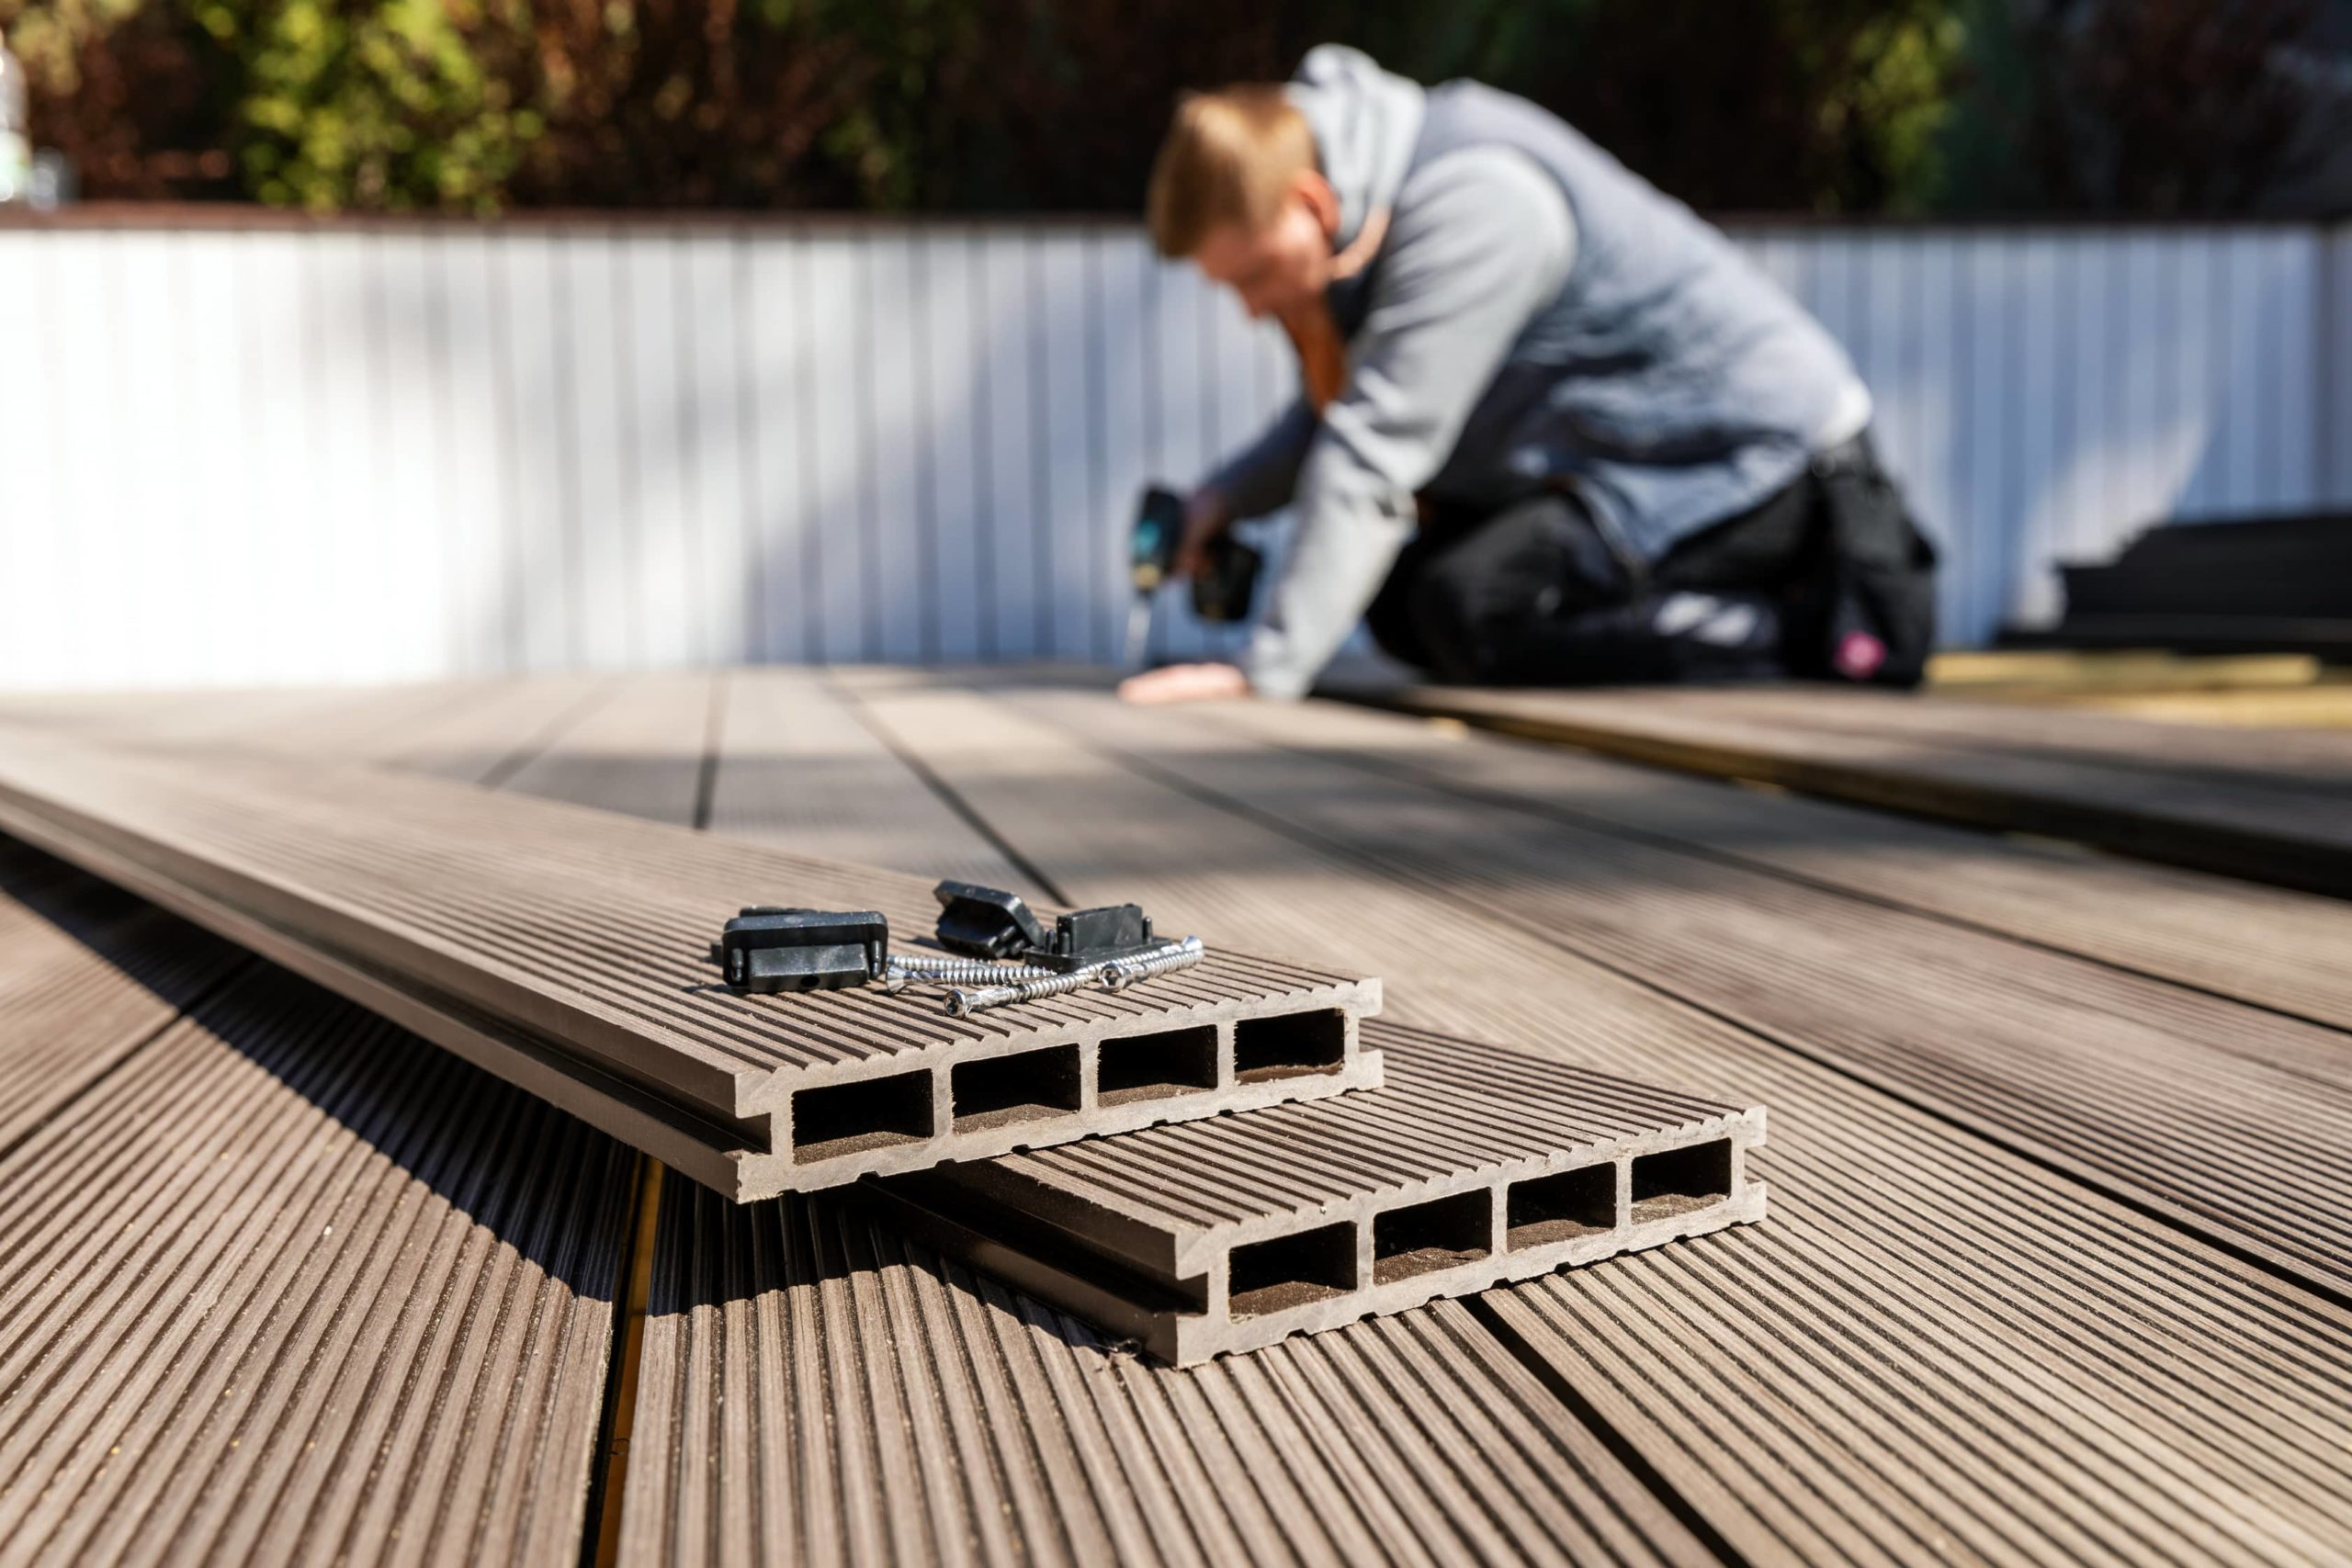 This image shows an expert deck contractor installing a composite board deck.